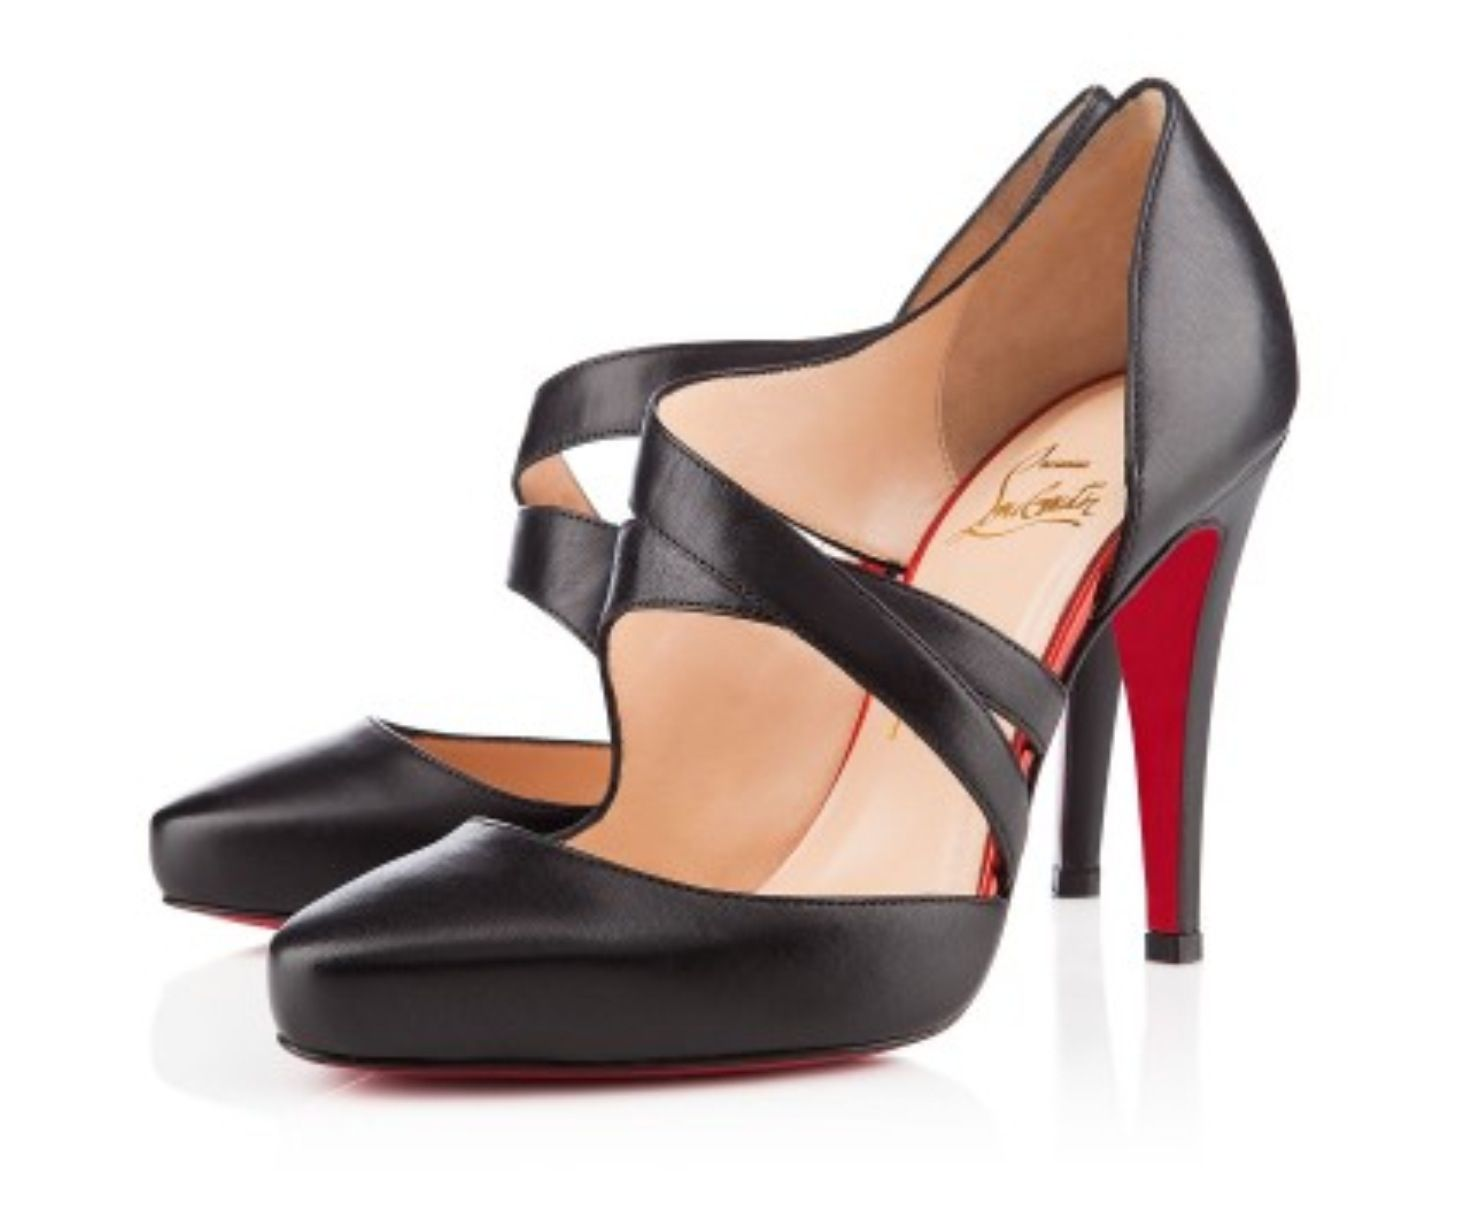 Love these.and I do need a new pair of black heals :-) Citoyenne Black - Louboutin  black pumps